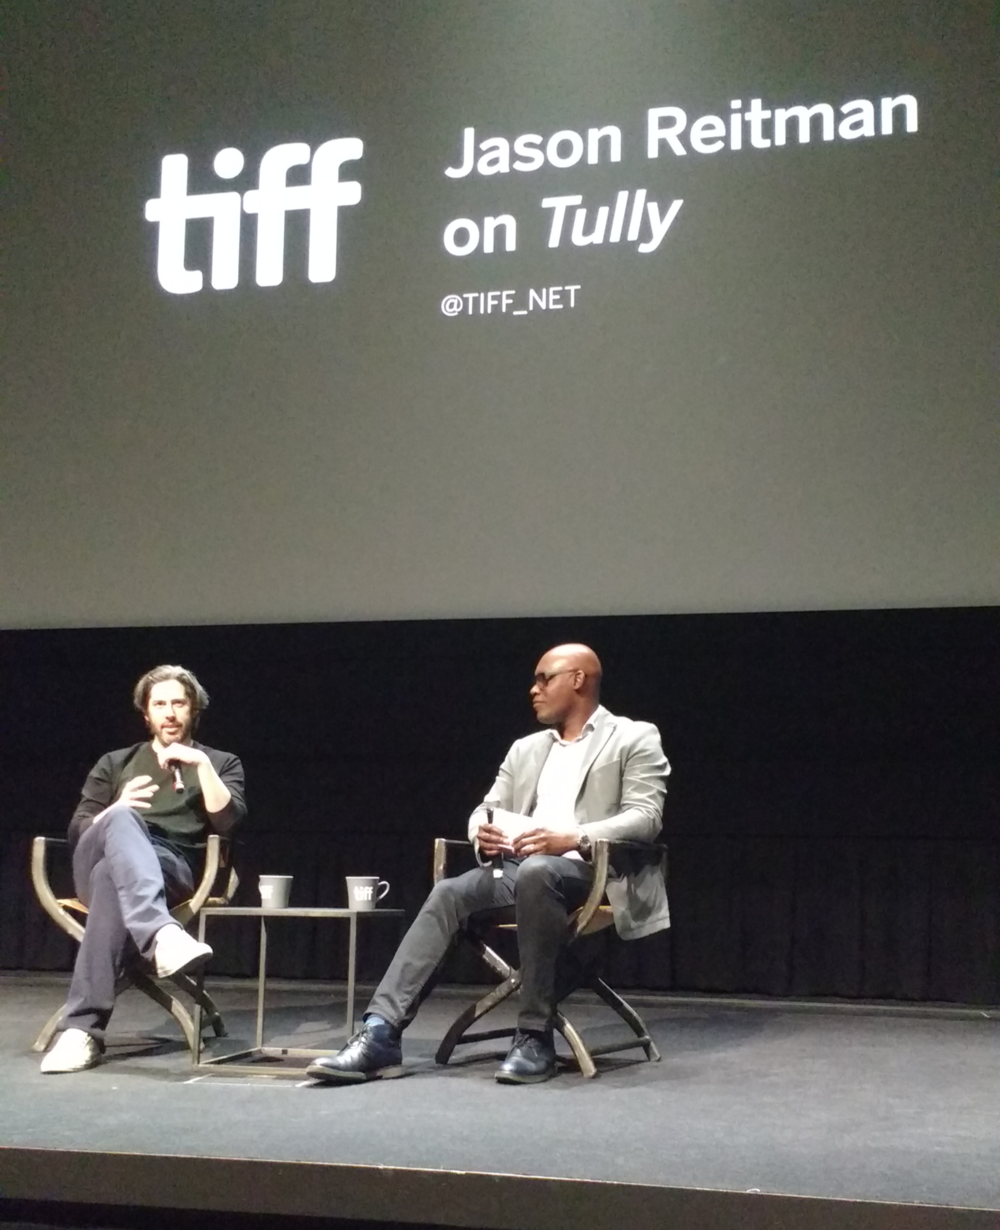 At the TIFF theatre in Toronto.